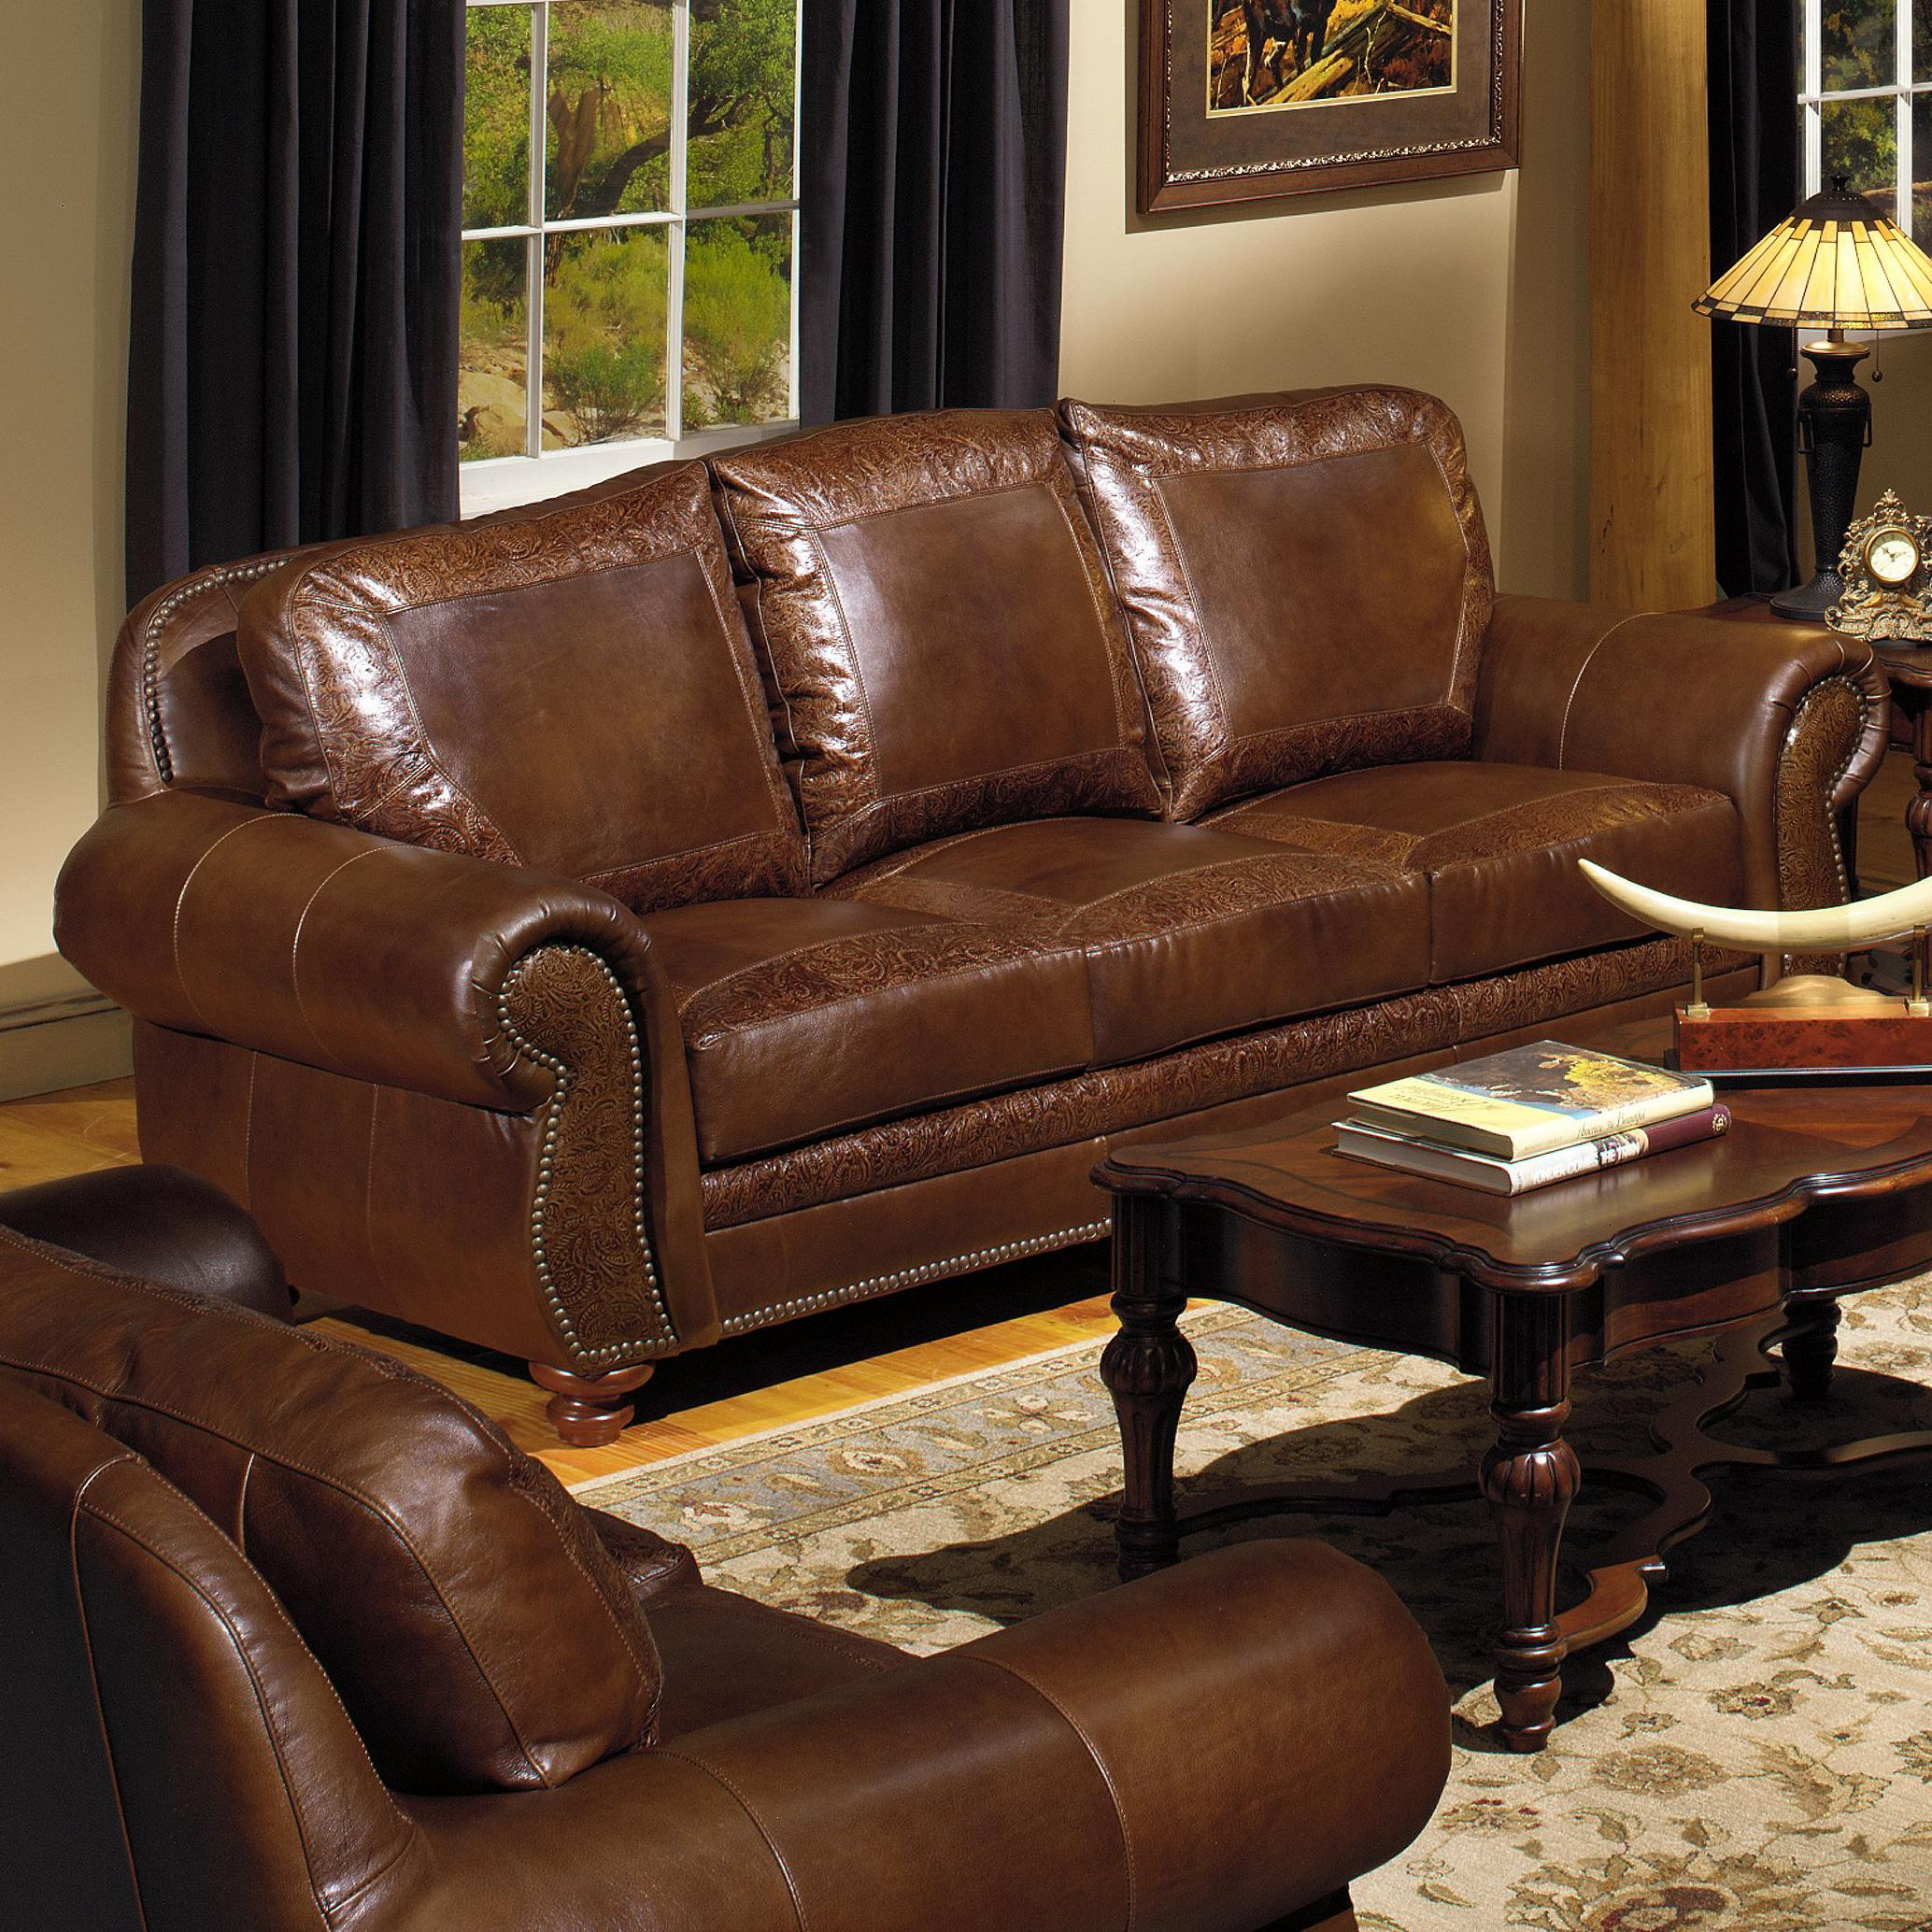 Traditional Leather Sofa With Nailhead Trim By Usa Premium Leather Wolf And Gardiner Wolf